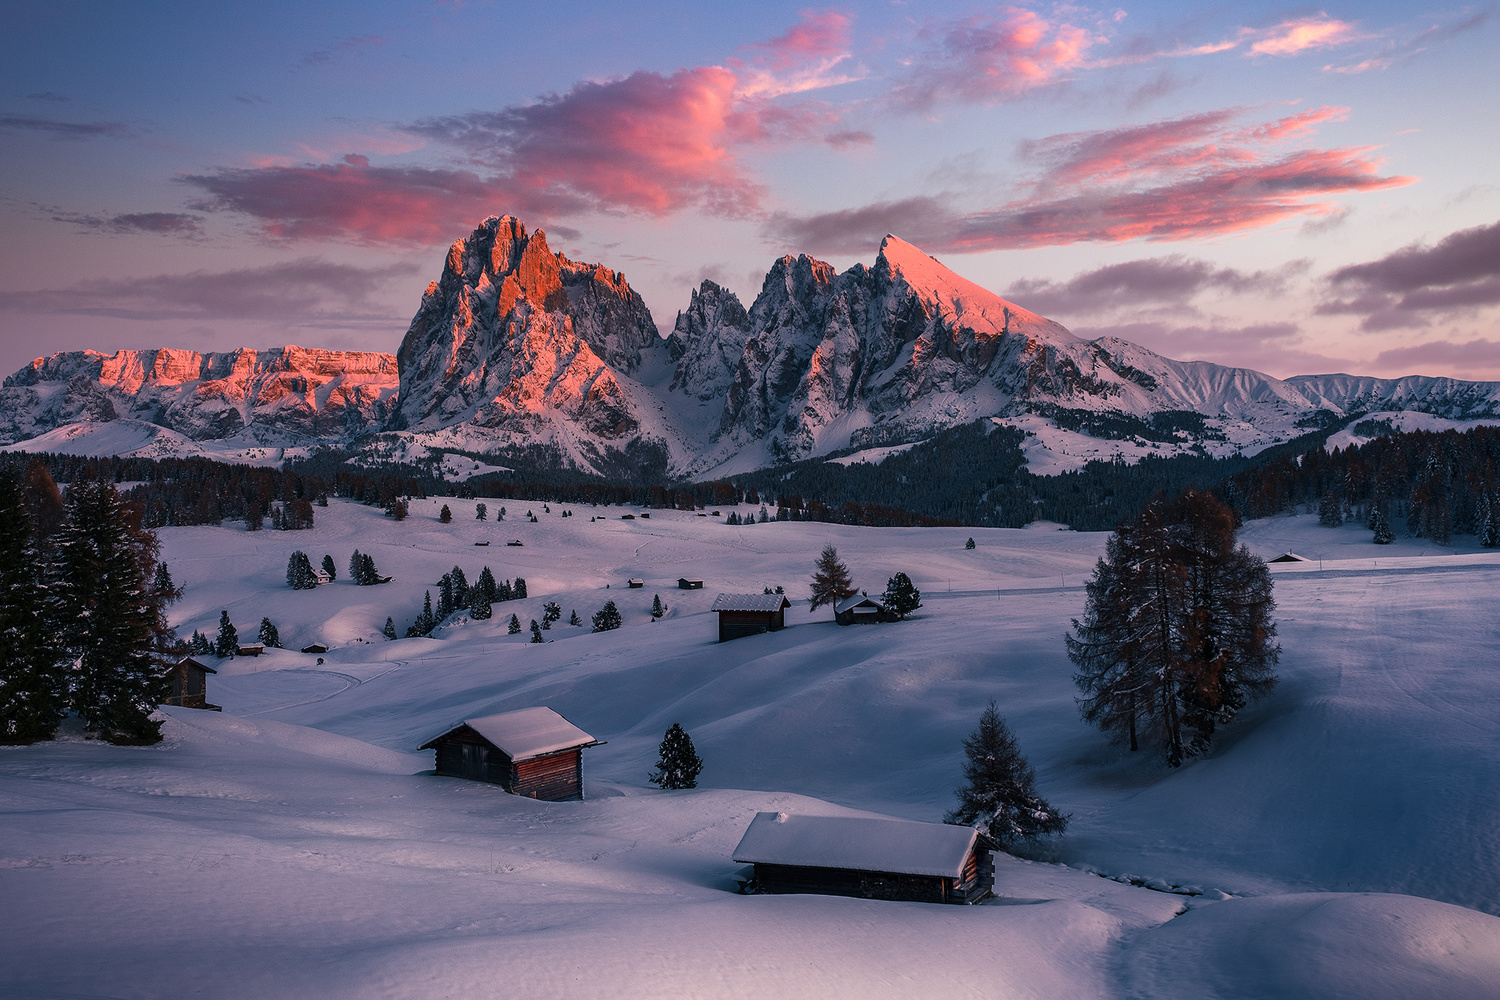 Sunset Glow at Alpe di Siusi by Win Mag